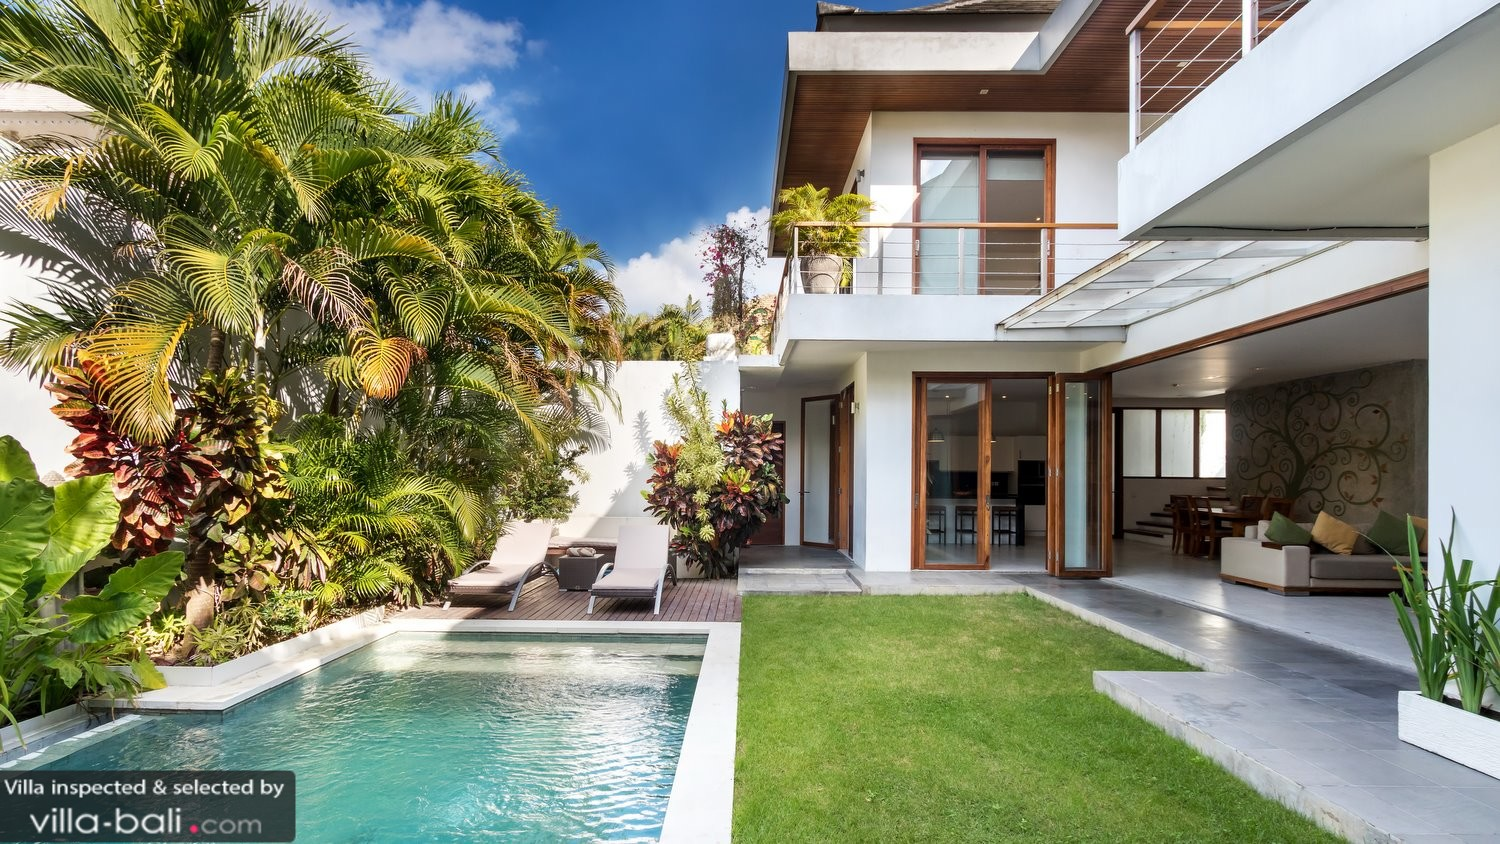 Casa cinta 1 in seminyak bali 3 bedrooms best price reviews - Maison a louer a bali ...